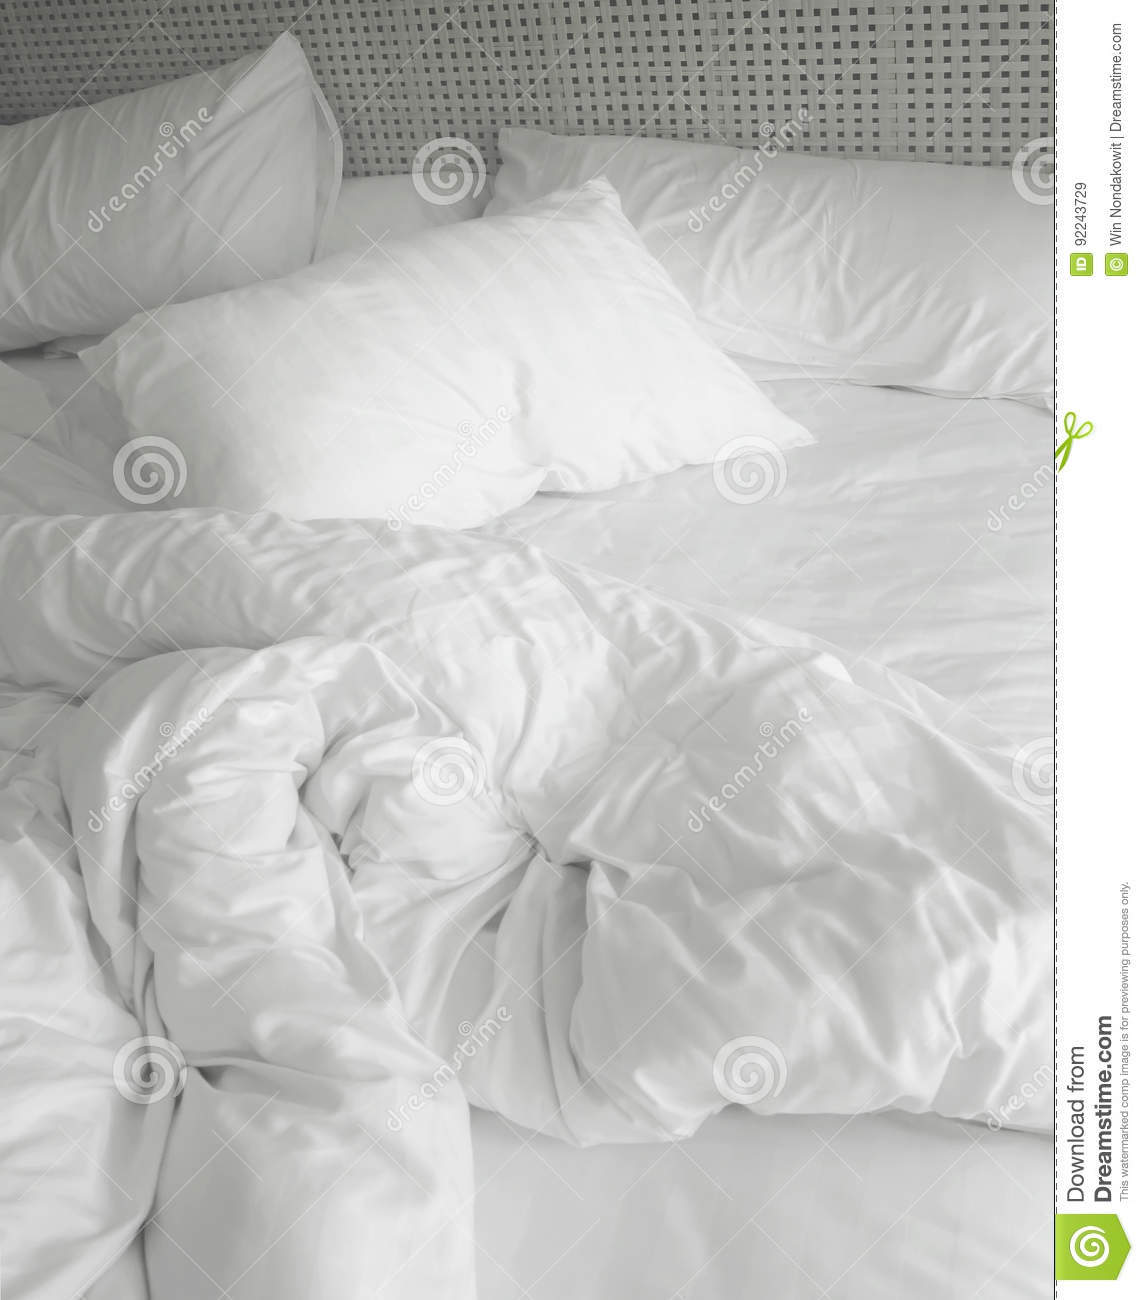 Download Messy Bed Sheets Stock Image. Image Of Material, Clean   92243729